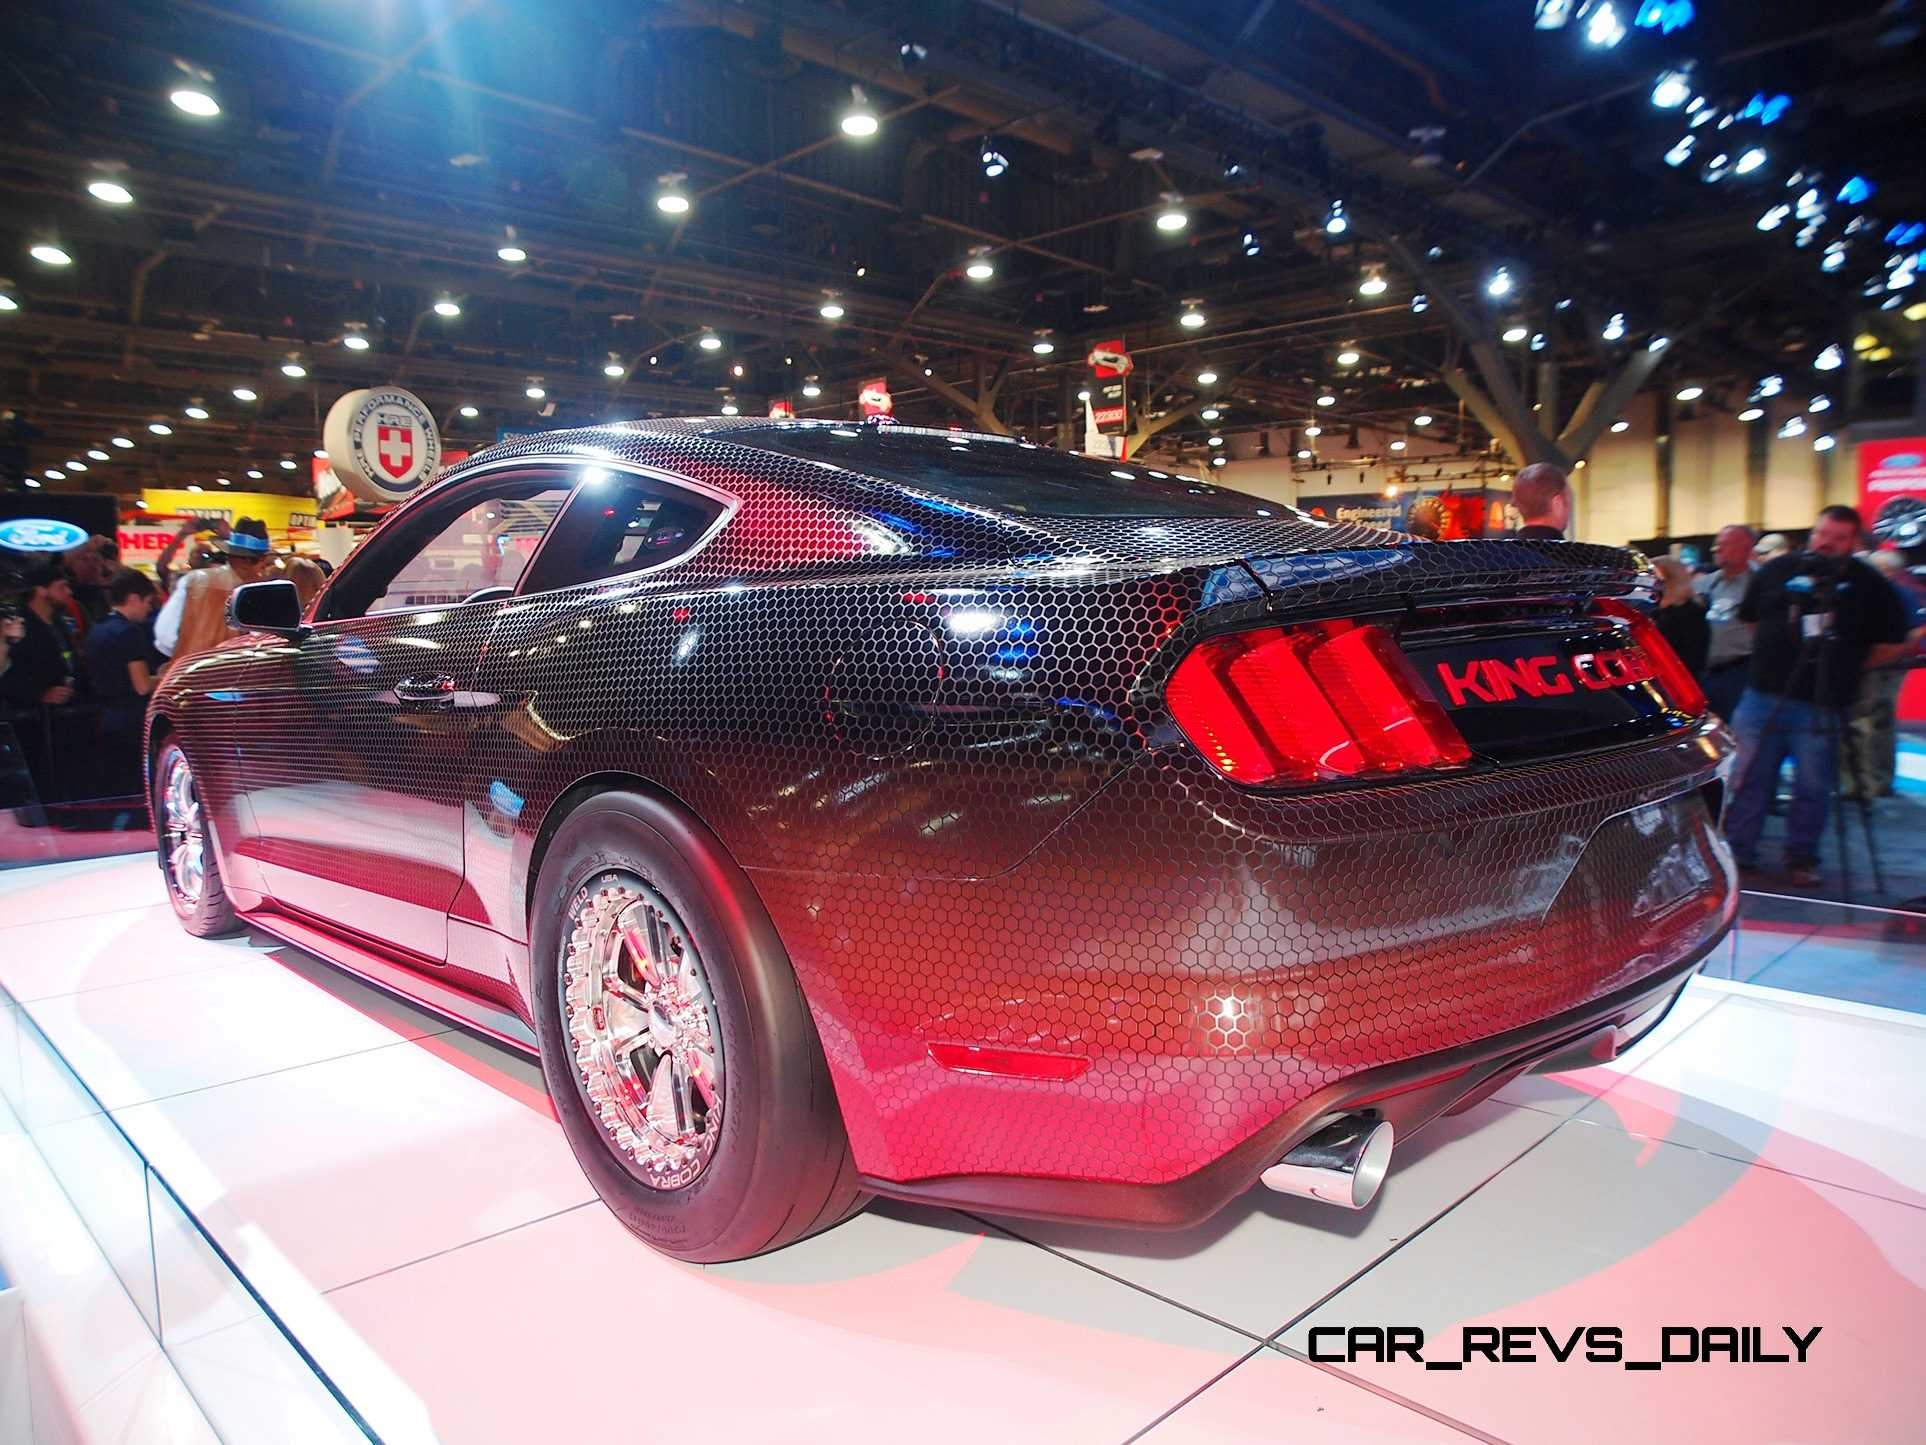 2015 Mustang Gt Supercharger >> 2015 Ford Mustang KING COBRA Is 625HP Factory-Parts Cobra ...